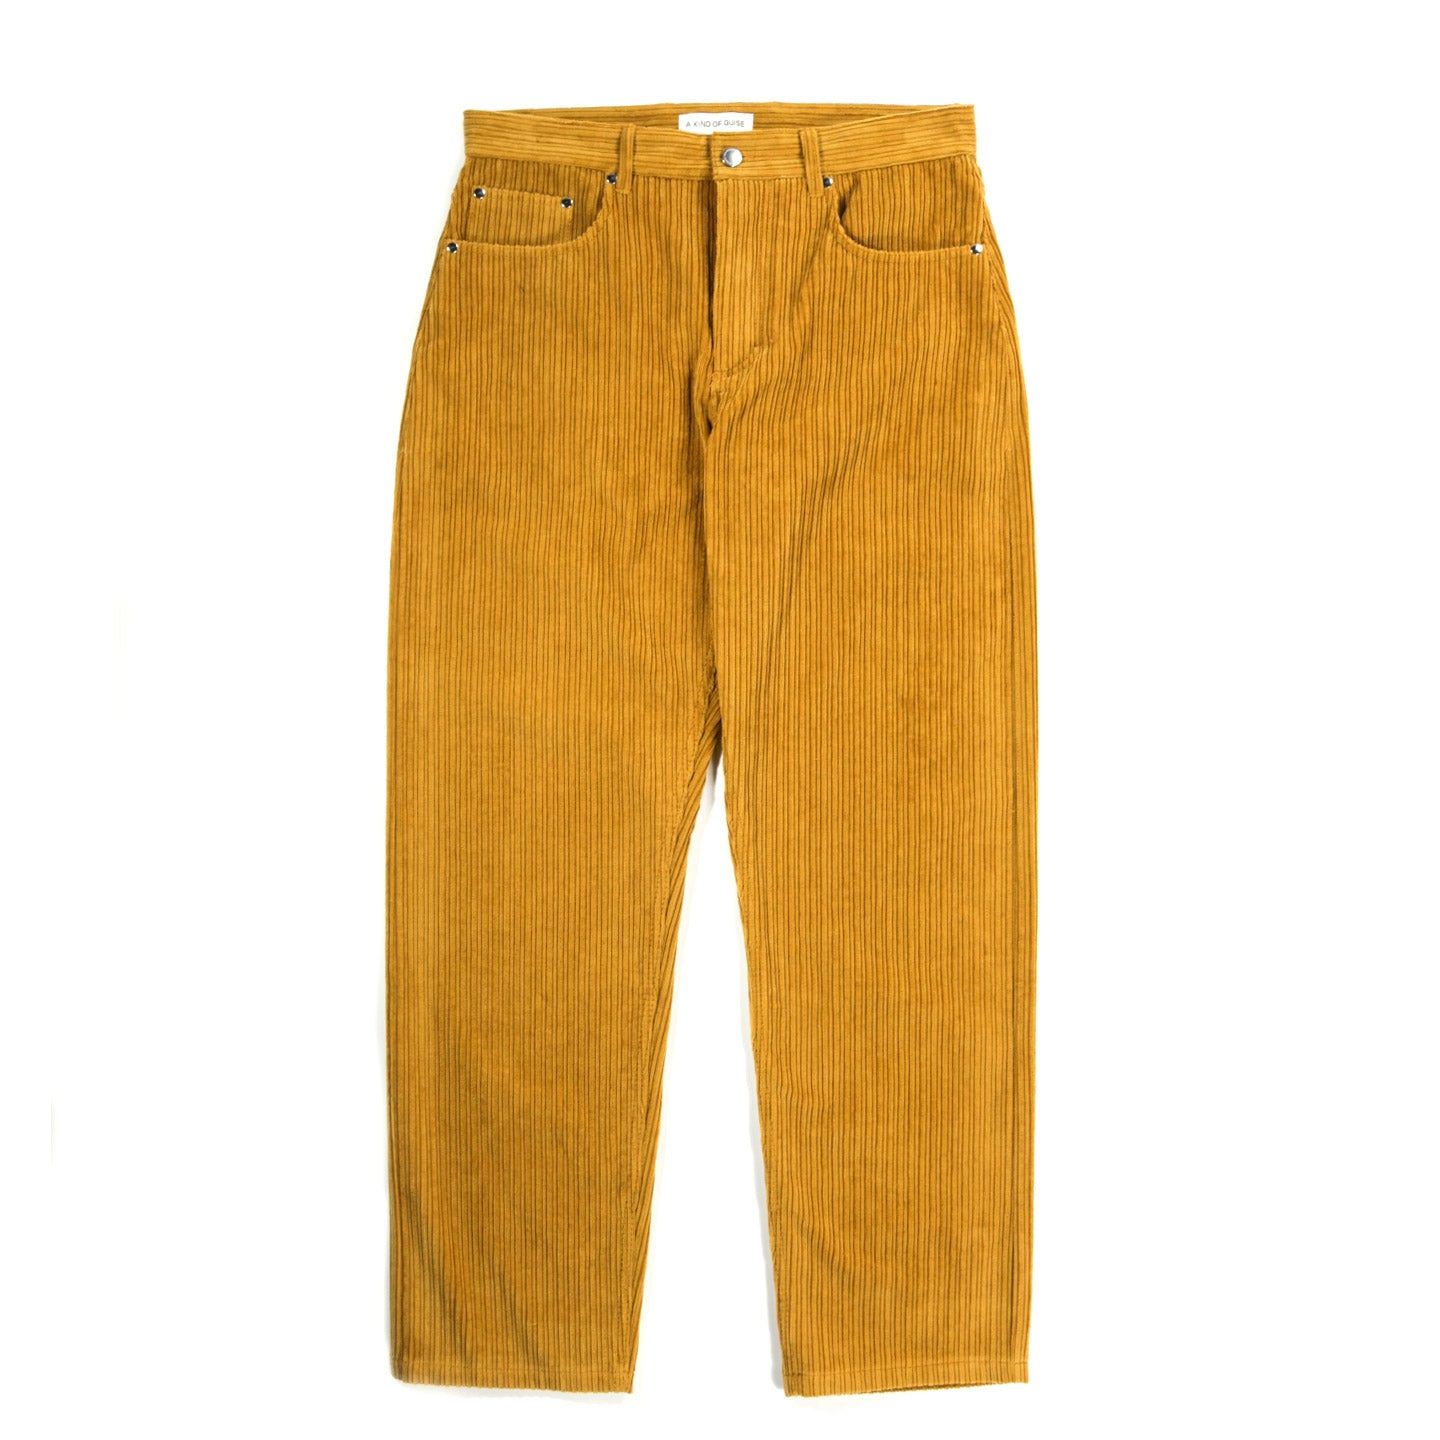 A KIND OF GUISE ODON WIDE JEANS MUSTARD